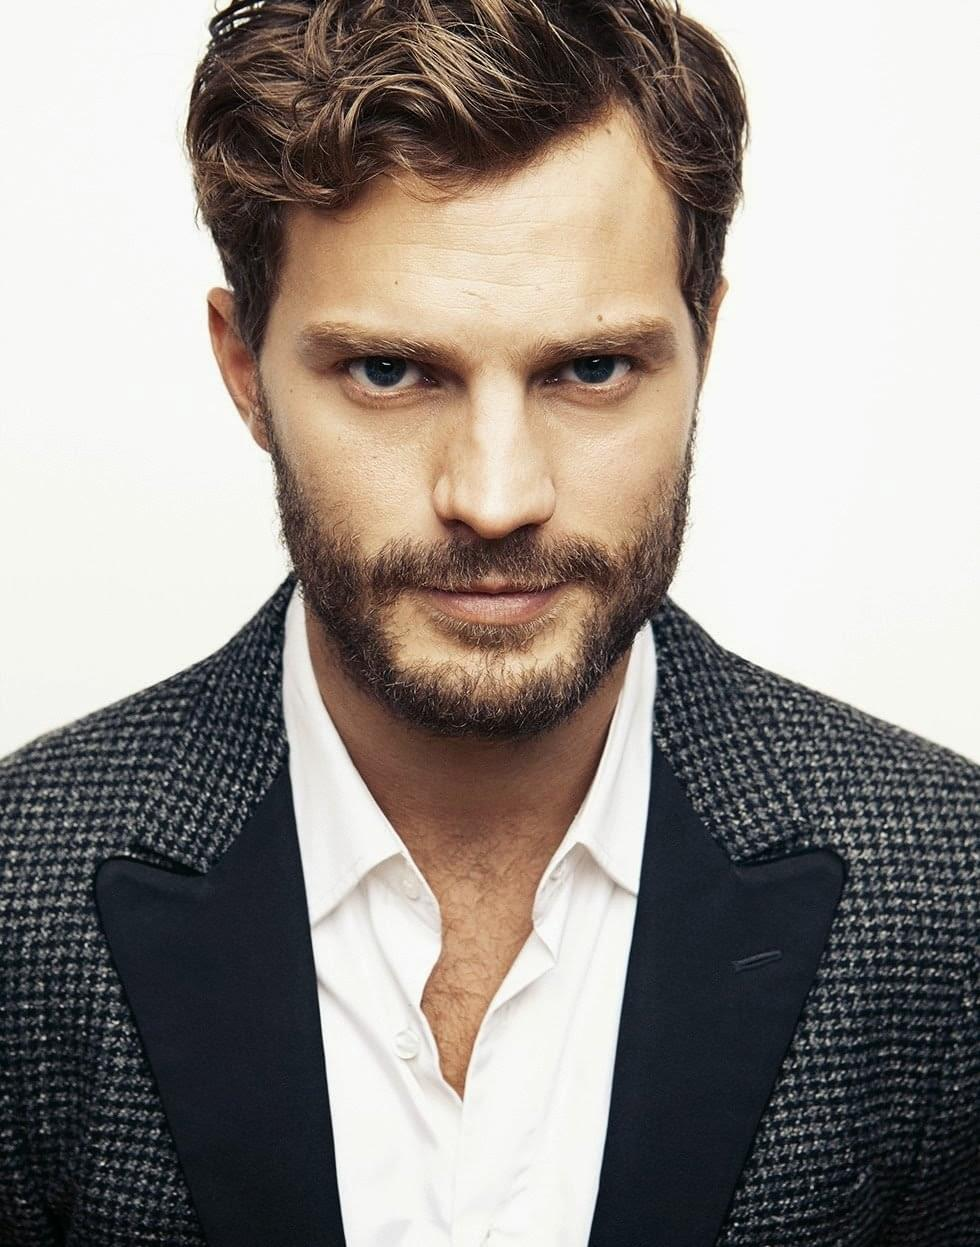 Jamie-Dornan-Glamour-for-March-2014